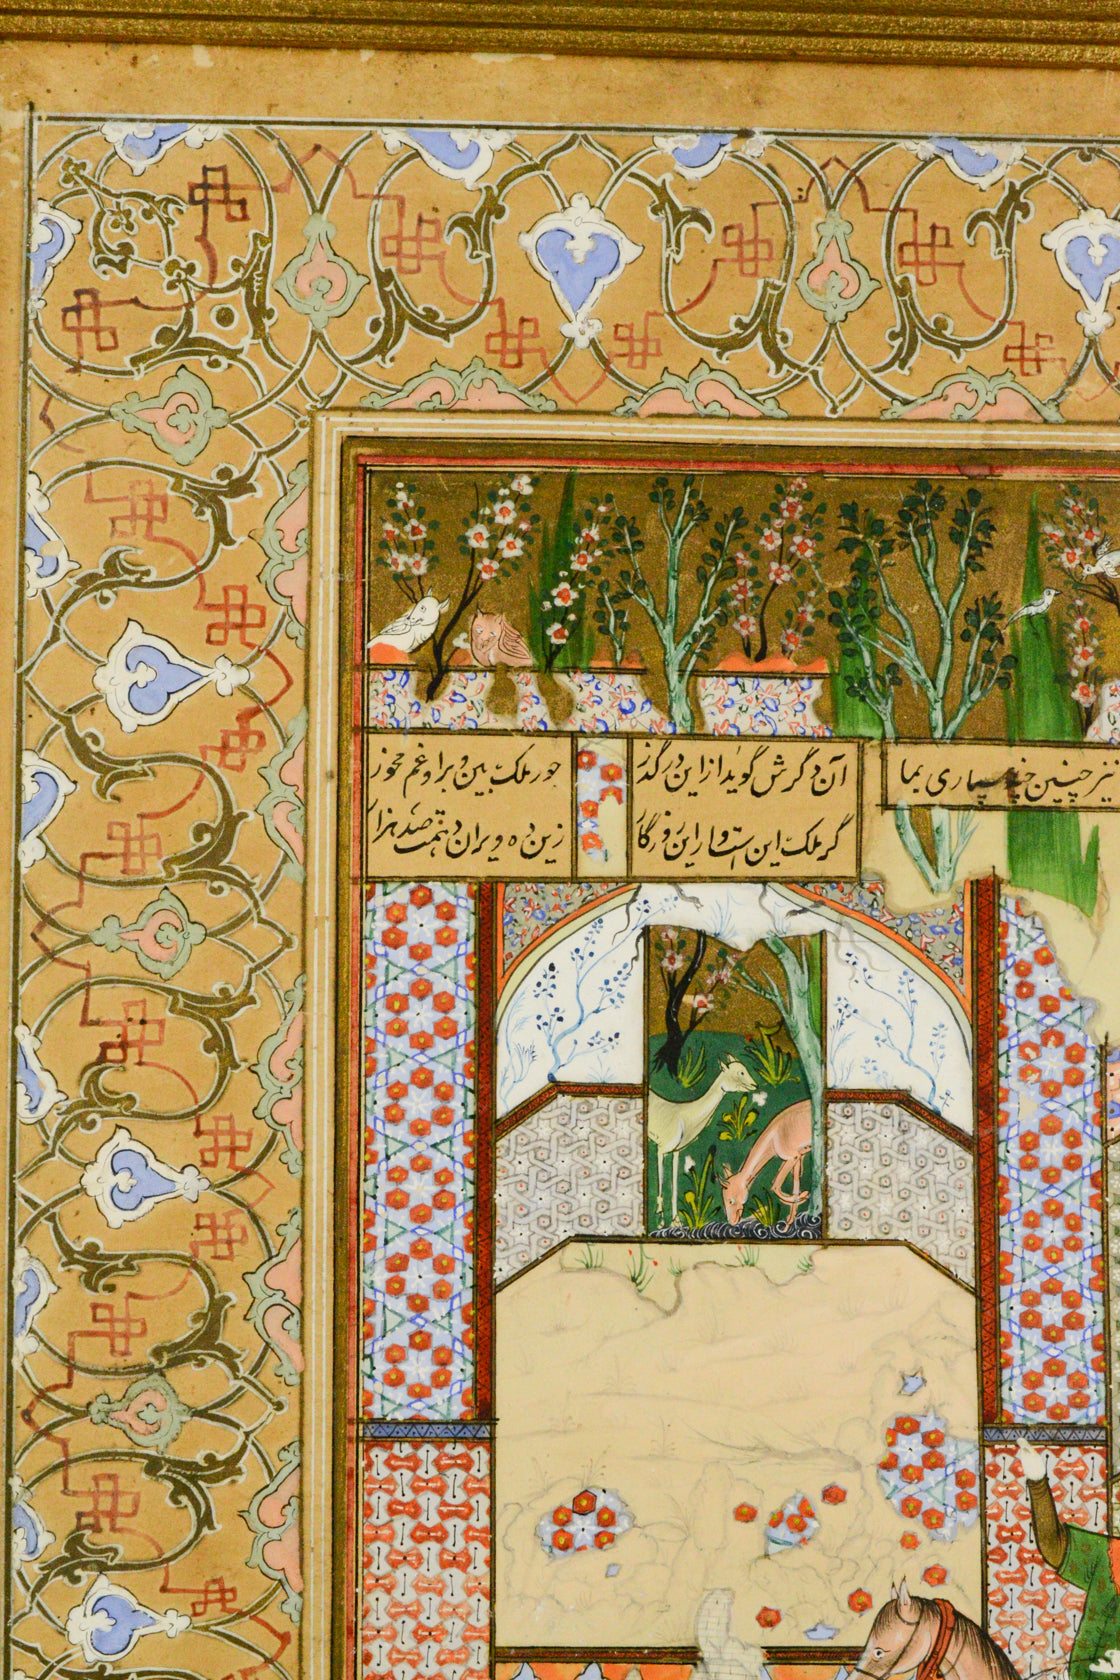 Mughal Painting from Nizami's poem Khamsa